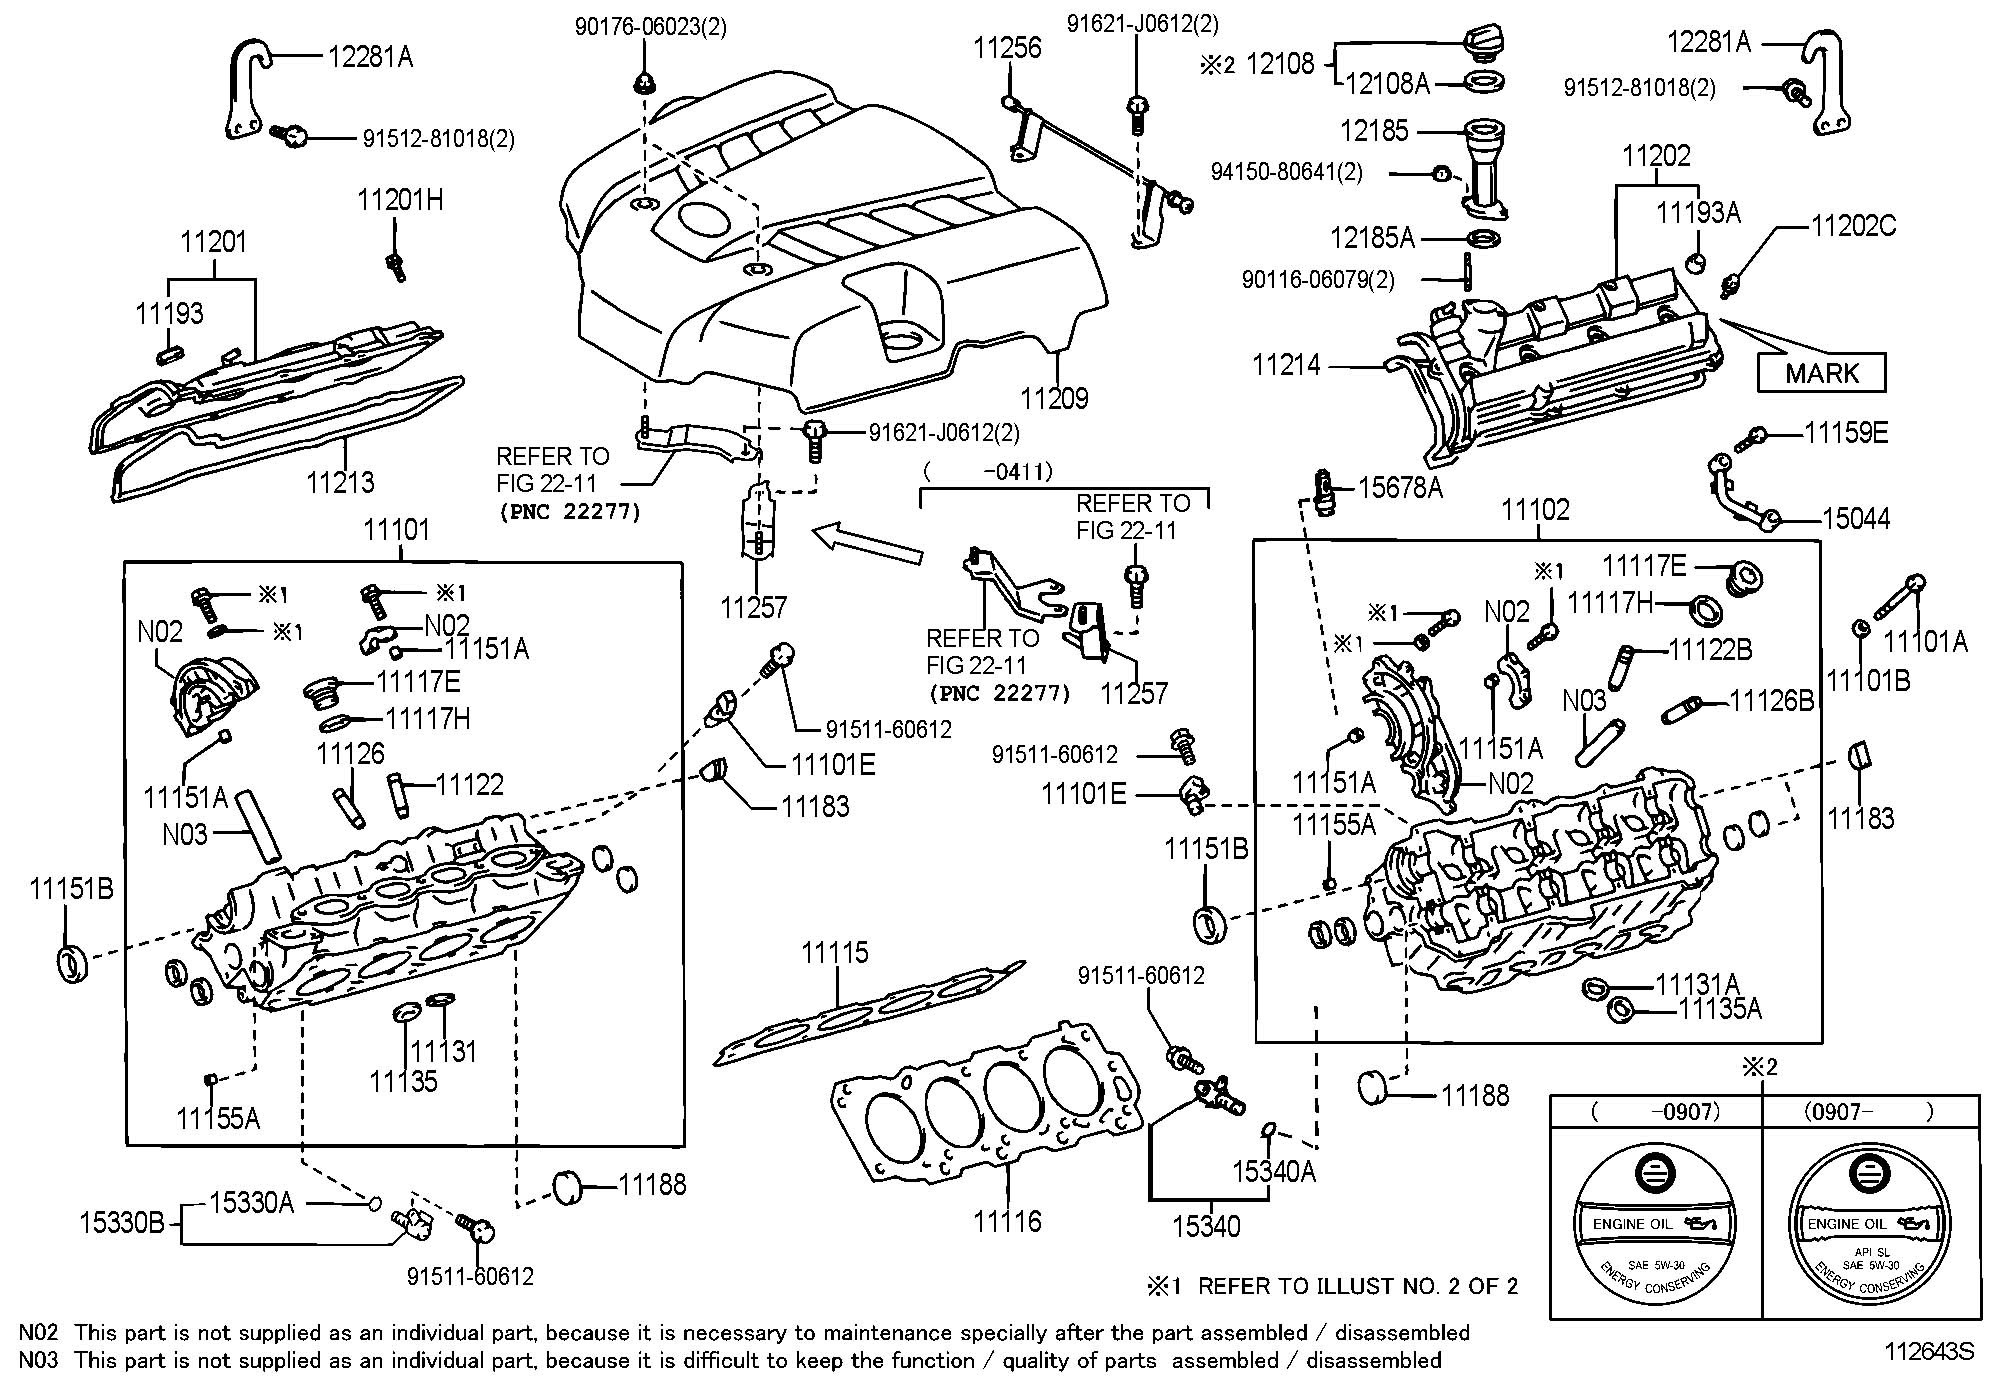 Lexus Rx330 Engine Diagram Circuit Connection Diagram \u2022 2005 Lexus  RX330 Specifications Fuse Box 2005 Lexus Rx330